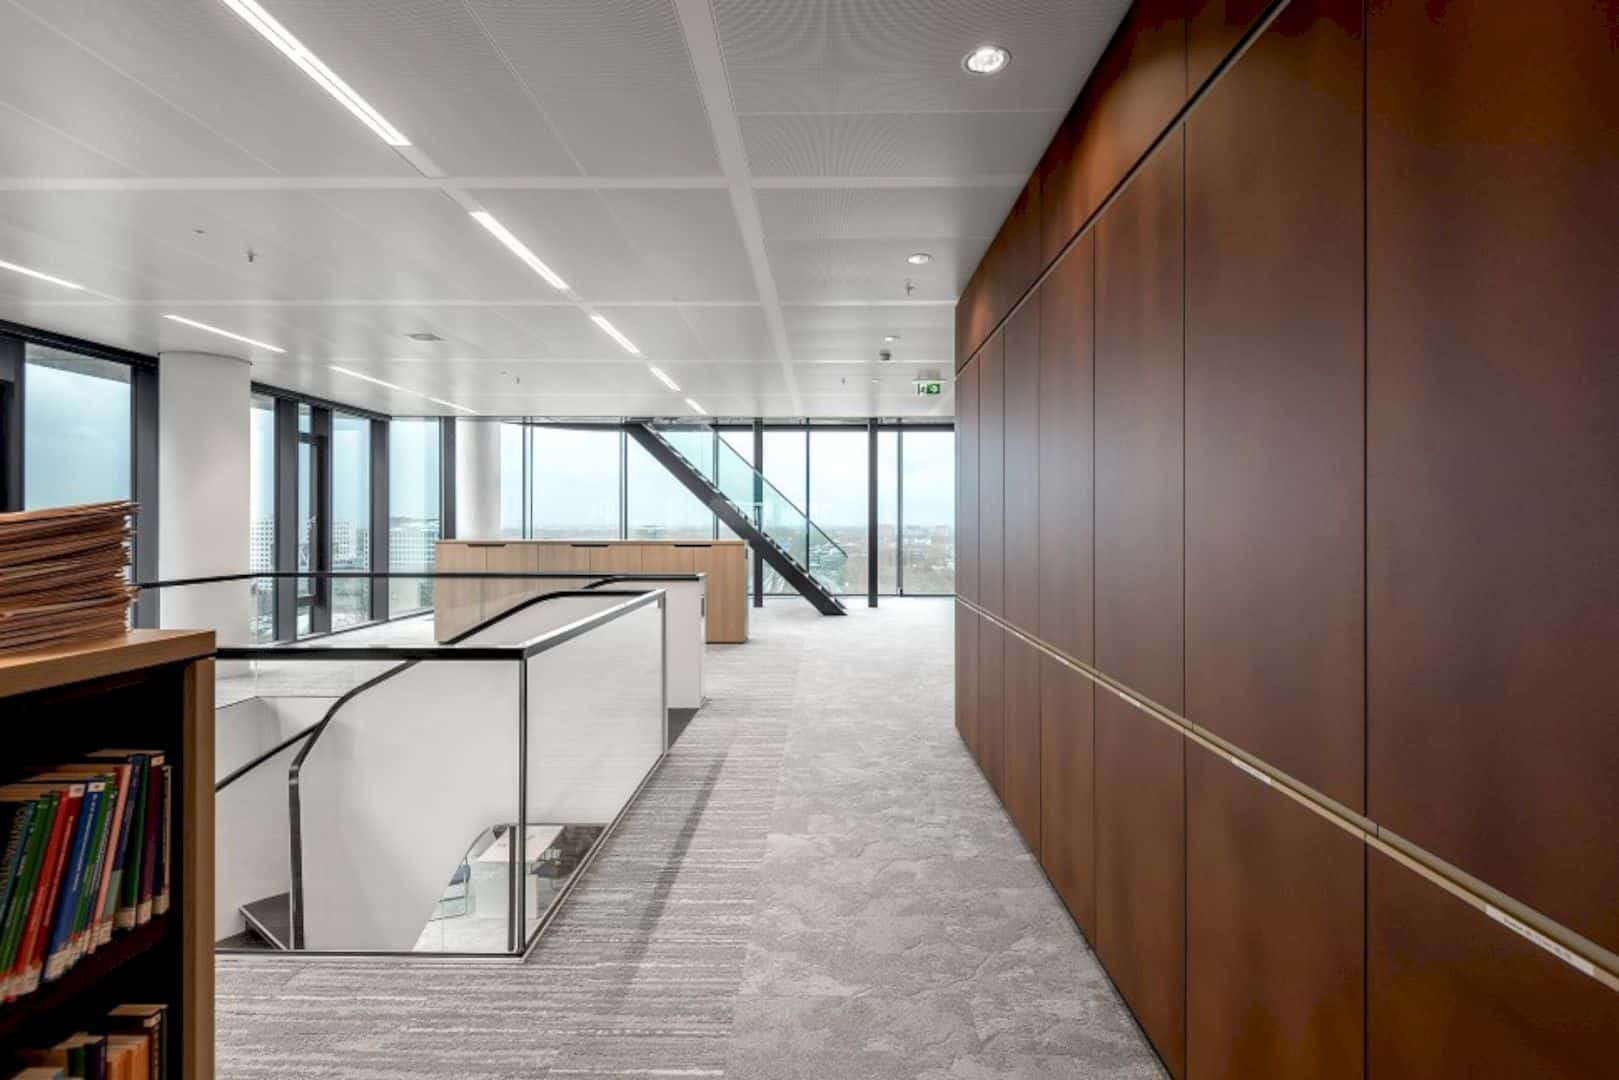 Cms Amsterdam A Warm Natural Base Office Design Merged With Curves And Transparency 7